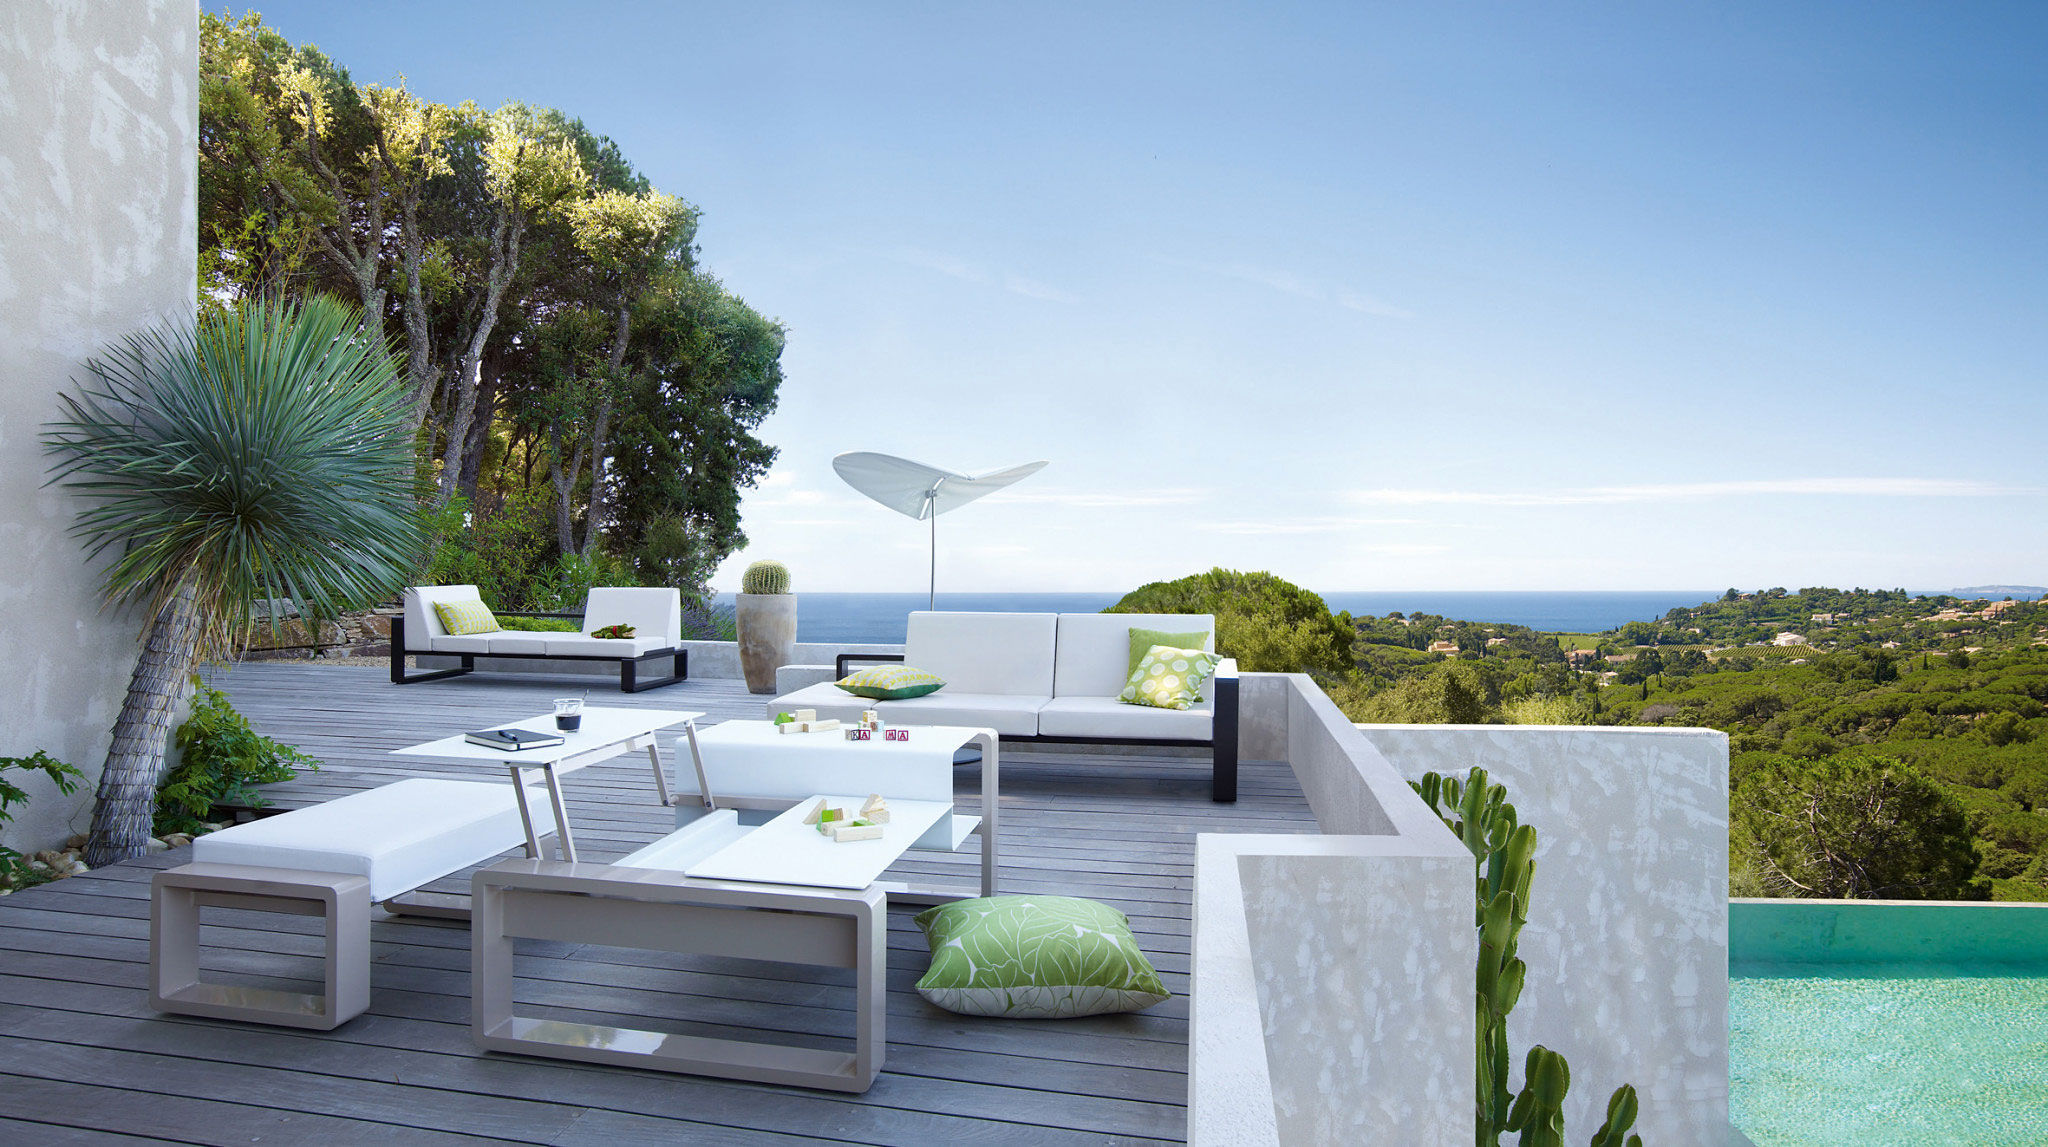 Modular patio furniture with adjustable table tops